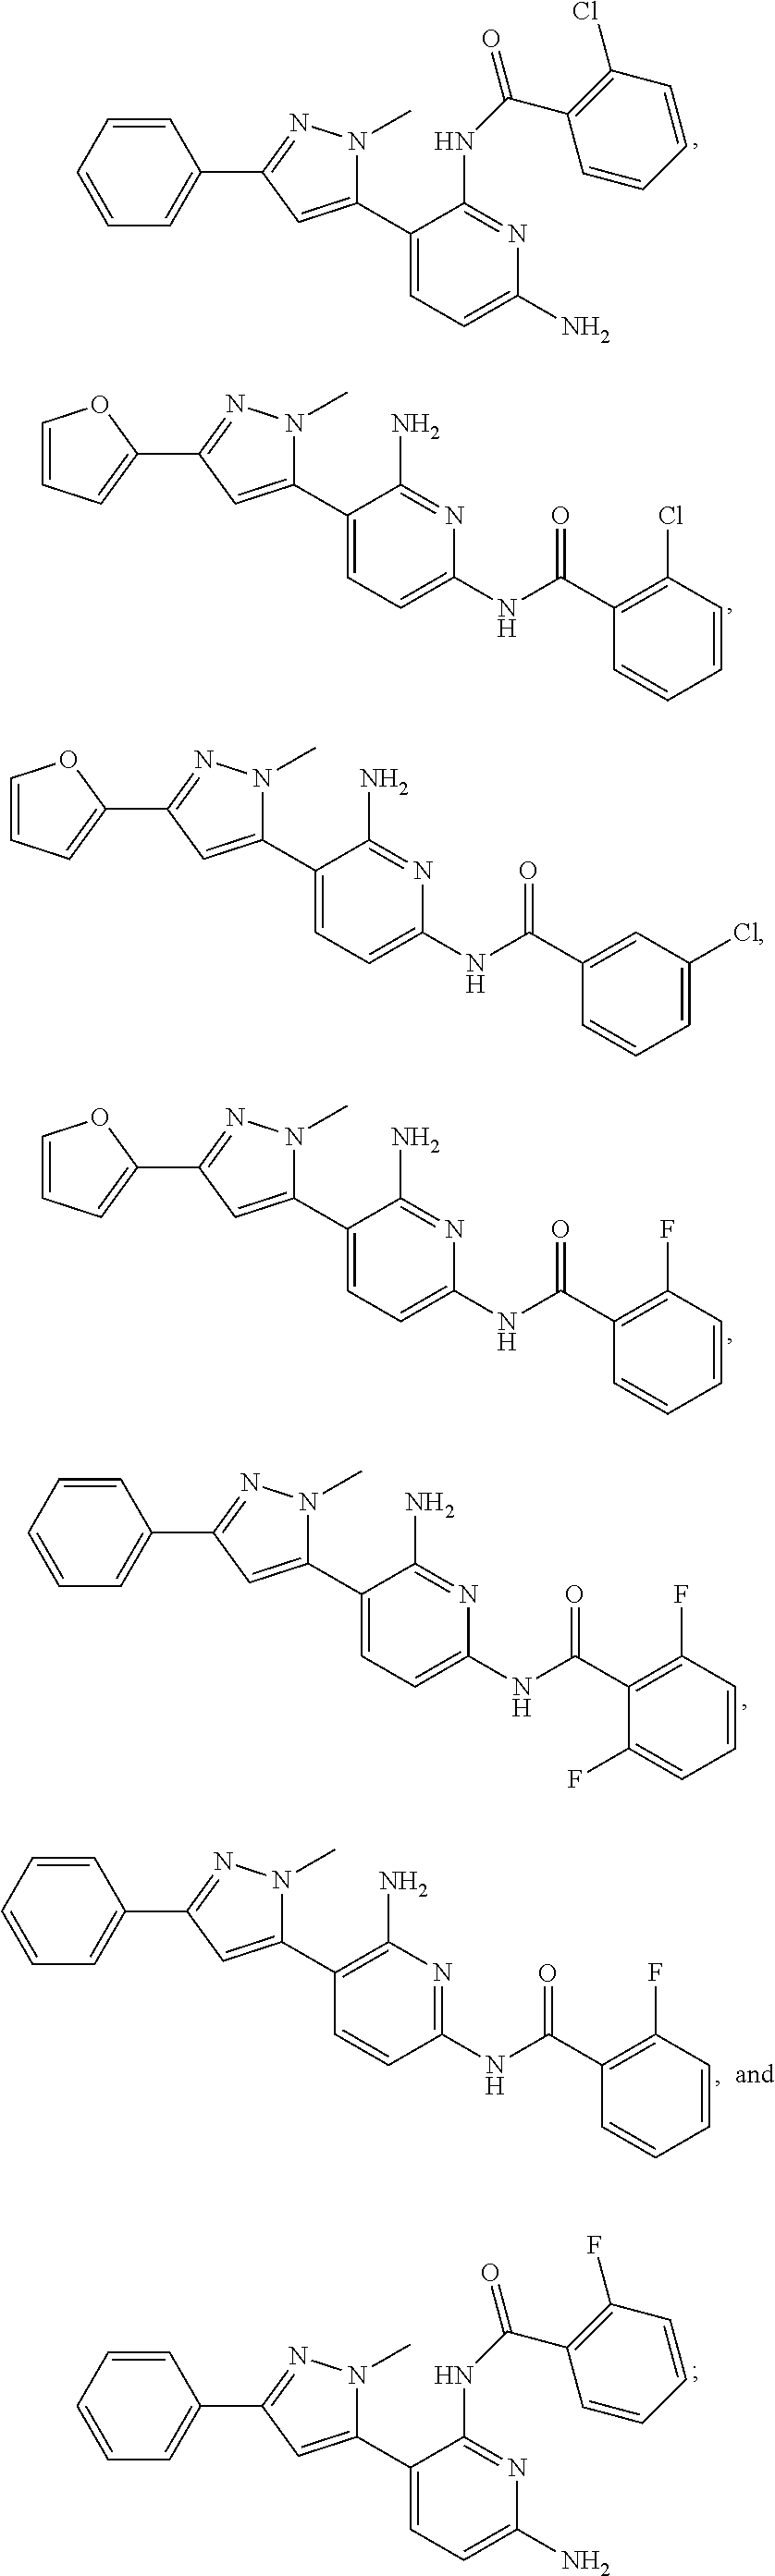 US8980629B2 - Compounds that modulate intracellular calcium